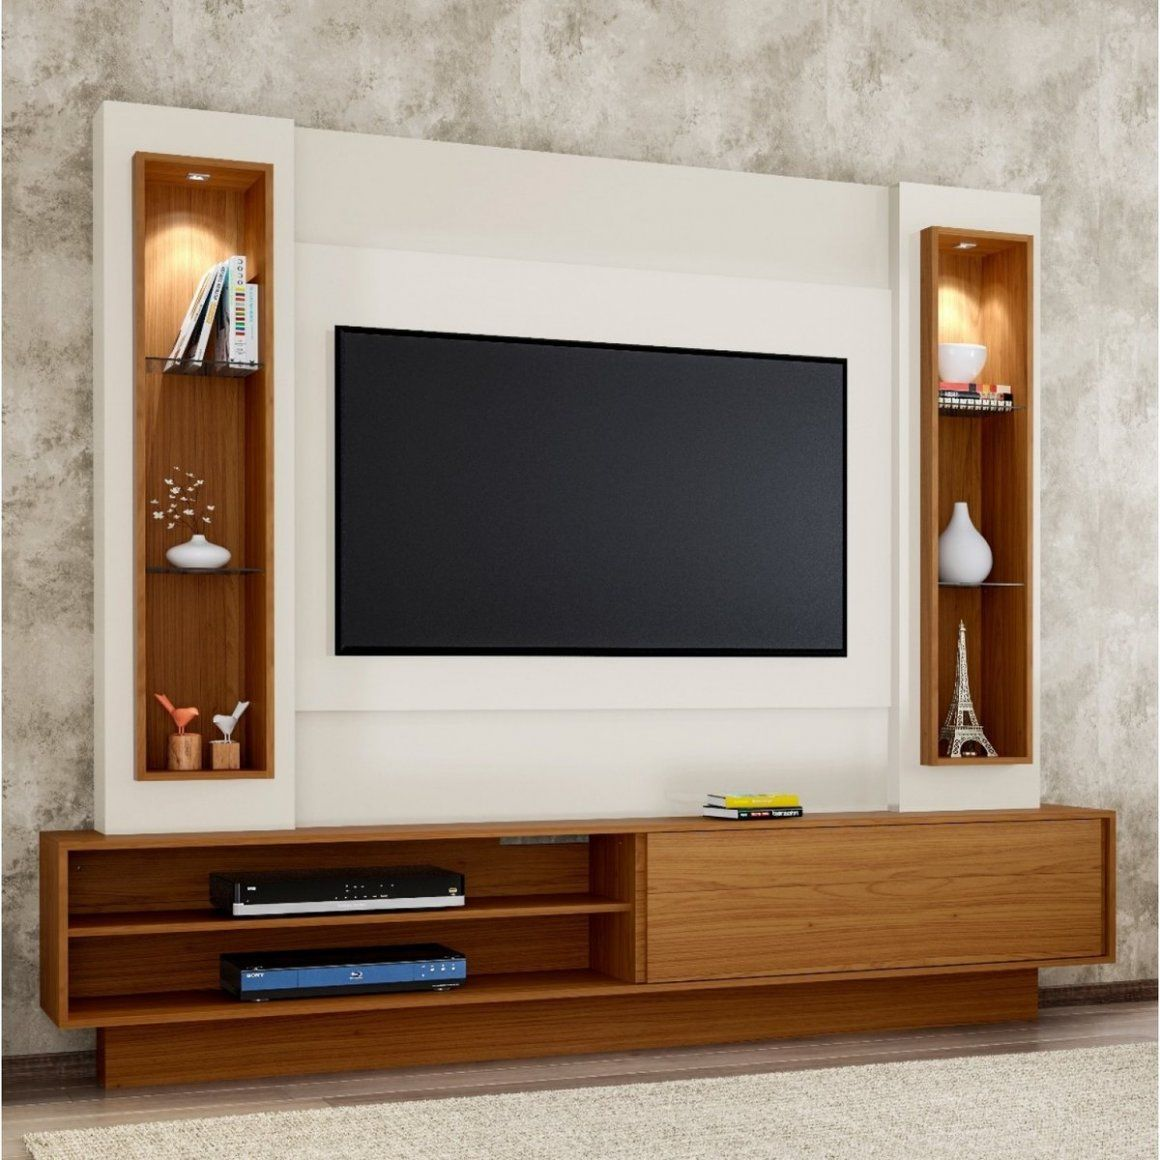 Amazing 30 Tv Stand Design Ideas Engineering Discoveries Modern Tv Wall Units Wall Tv Unit Design Living Room Tv Unit Designs